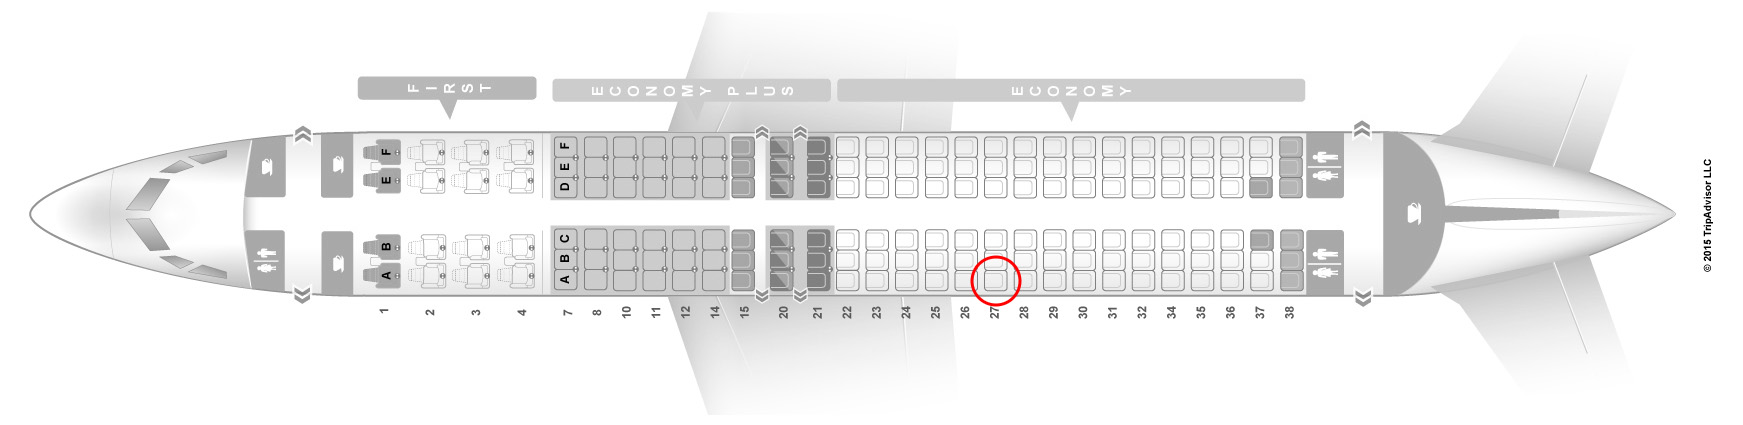 united 737-800 seat map